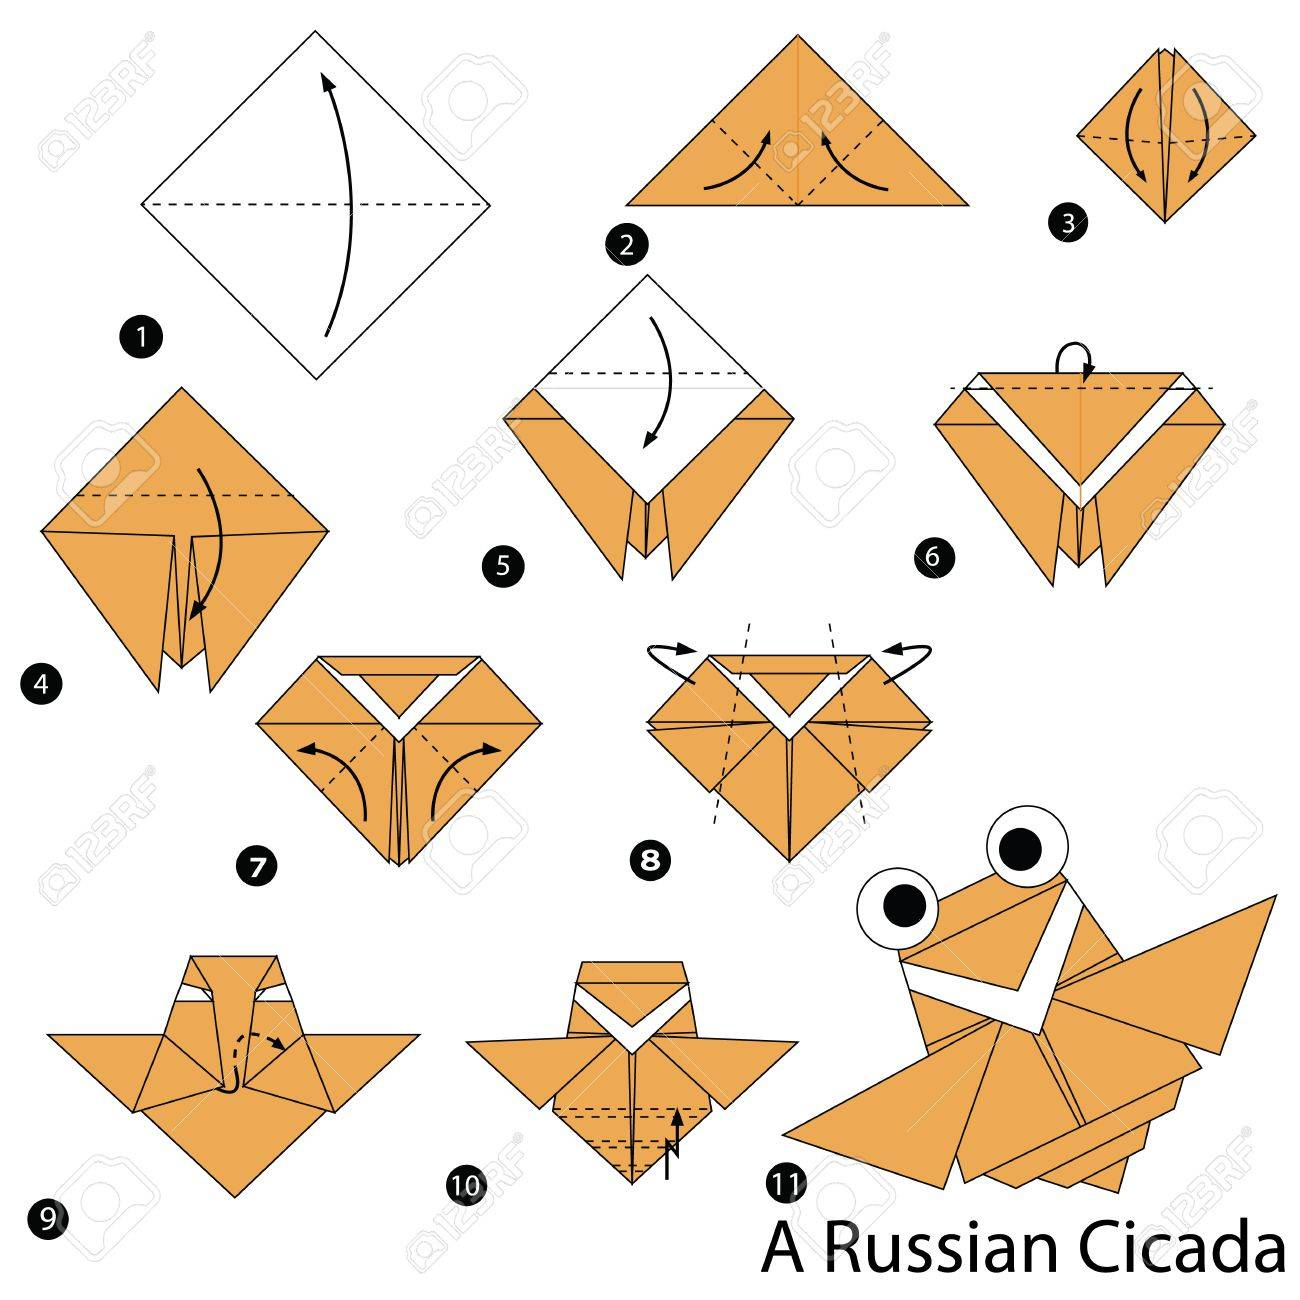 Step by step instructions on how to make origami a russian cicada step by step instructions on how to make origami a russian cicada stock vector jeuxipadfo Images